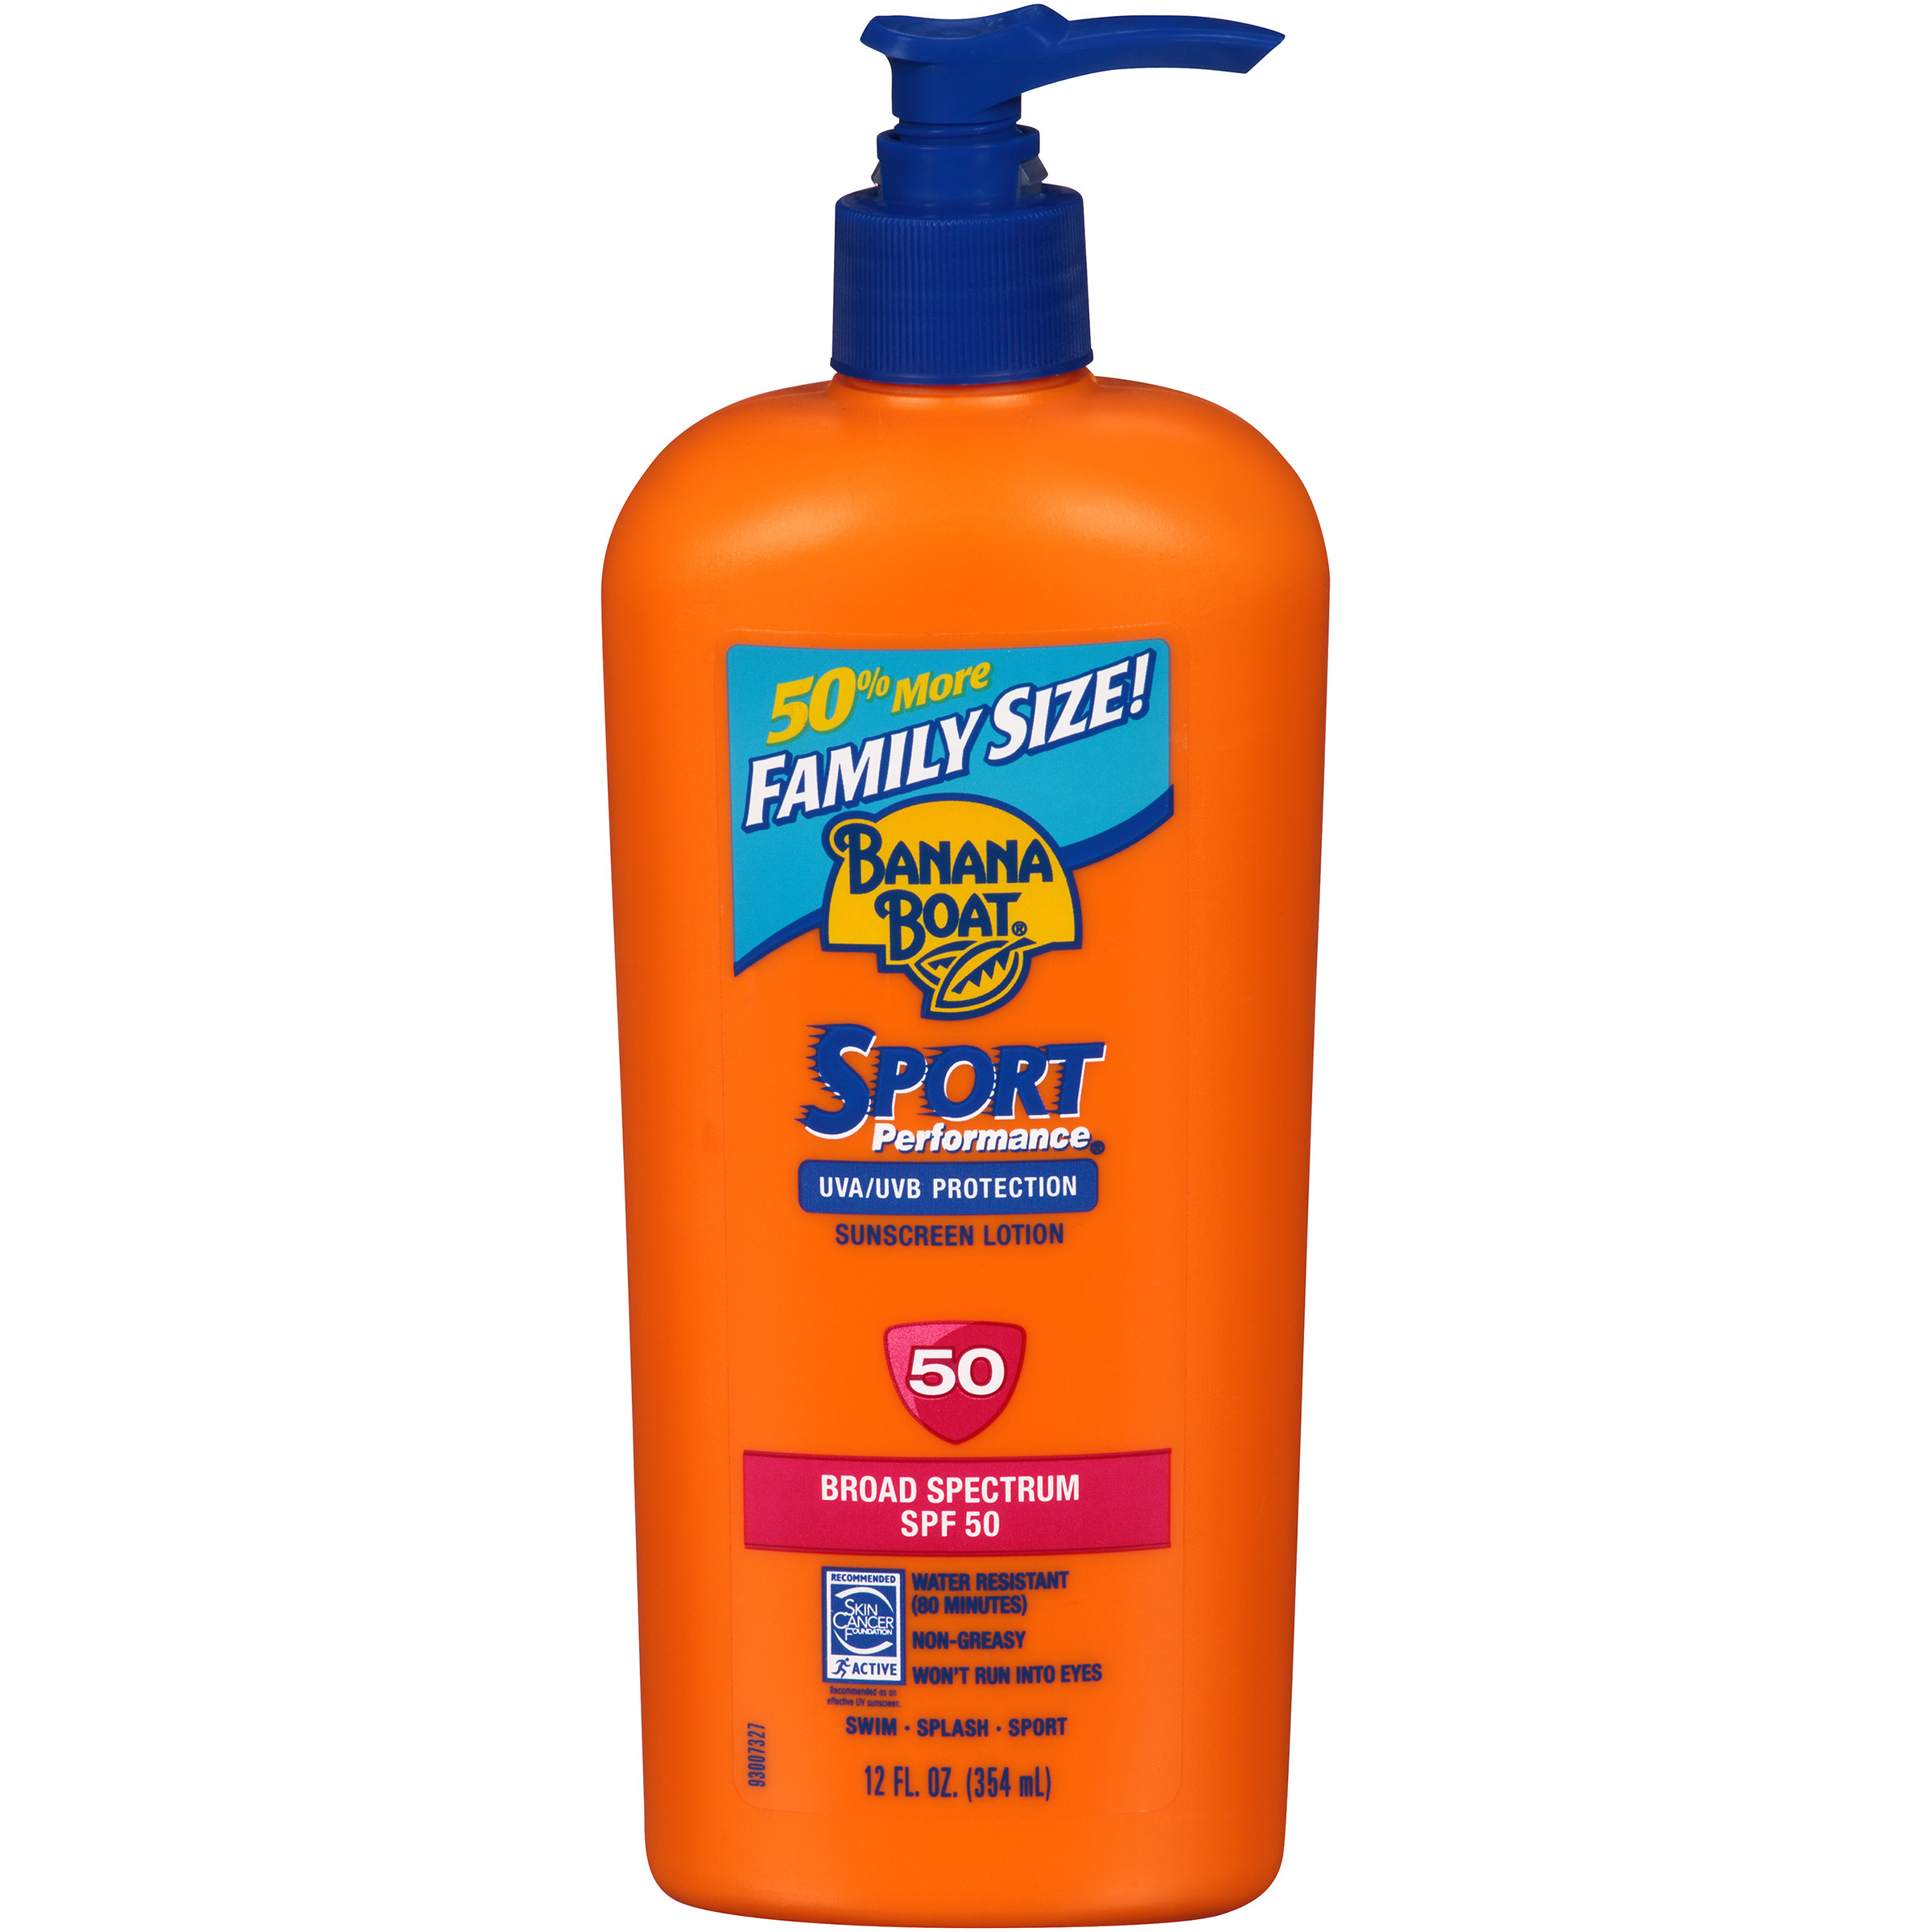 Banana Boat Sport Performance Lotion Family Size Sunscreen Broad Spectrum SPF 50 - 12 Ounces